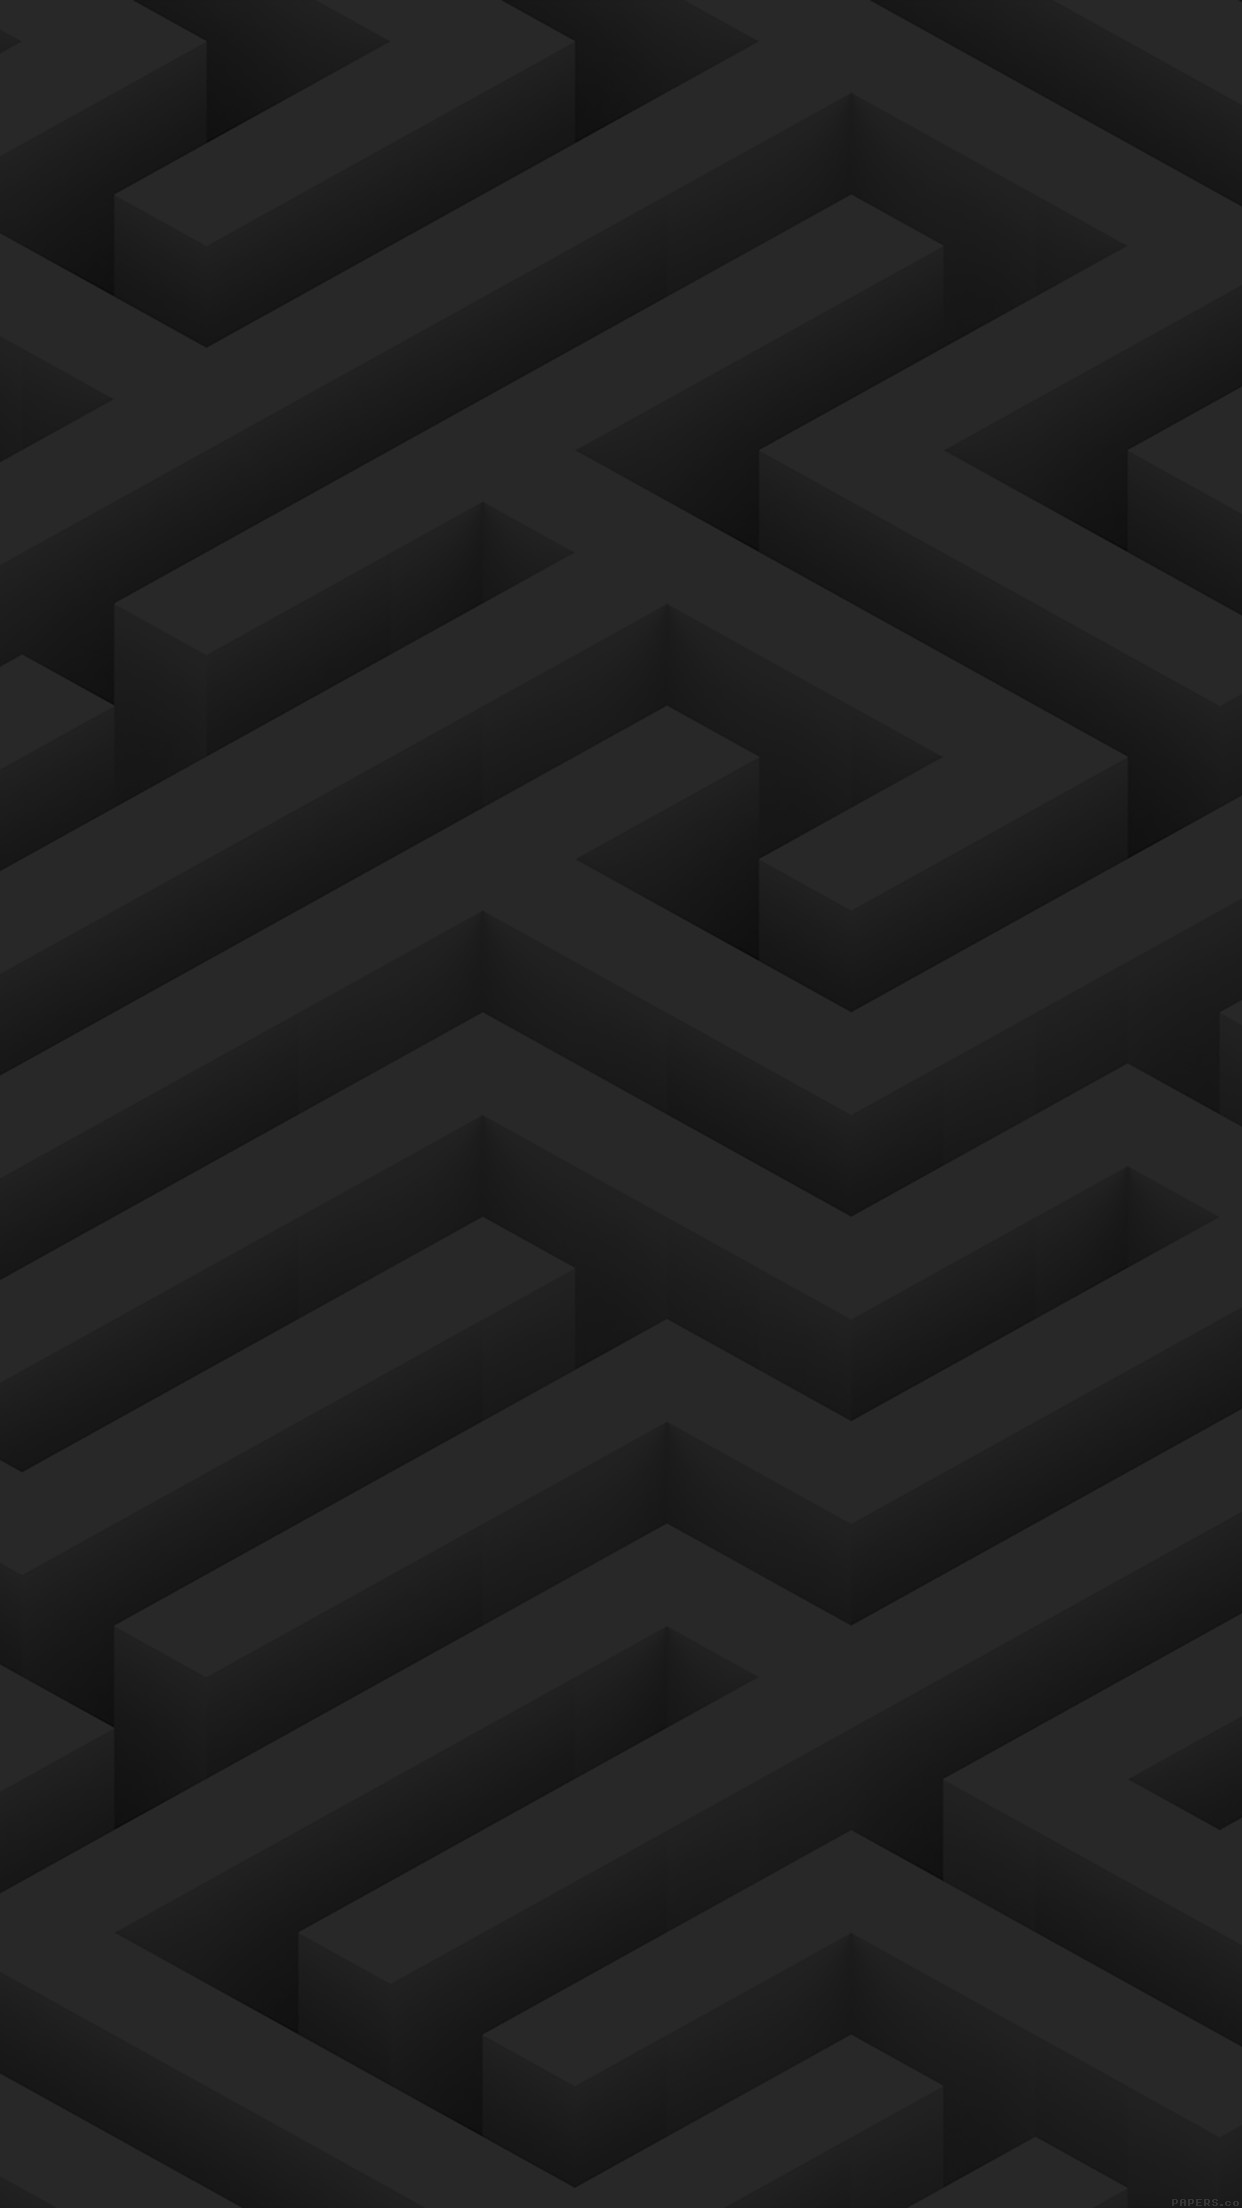 Maze Art Dark Abstract Patterns Android wallpaper